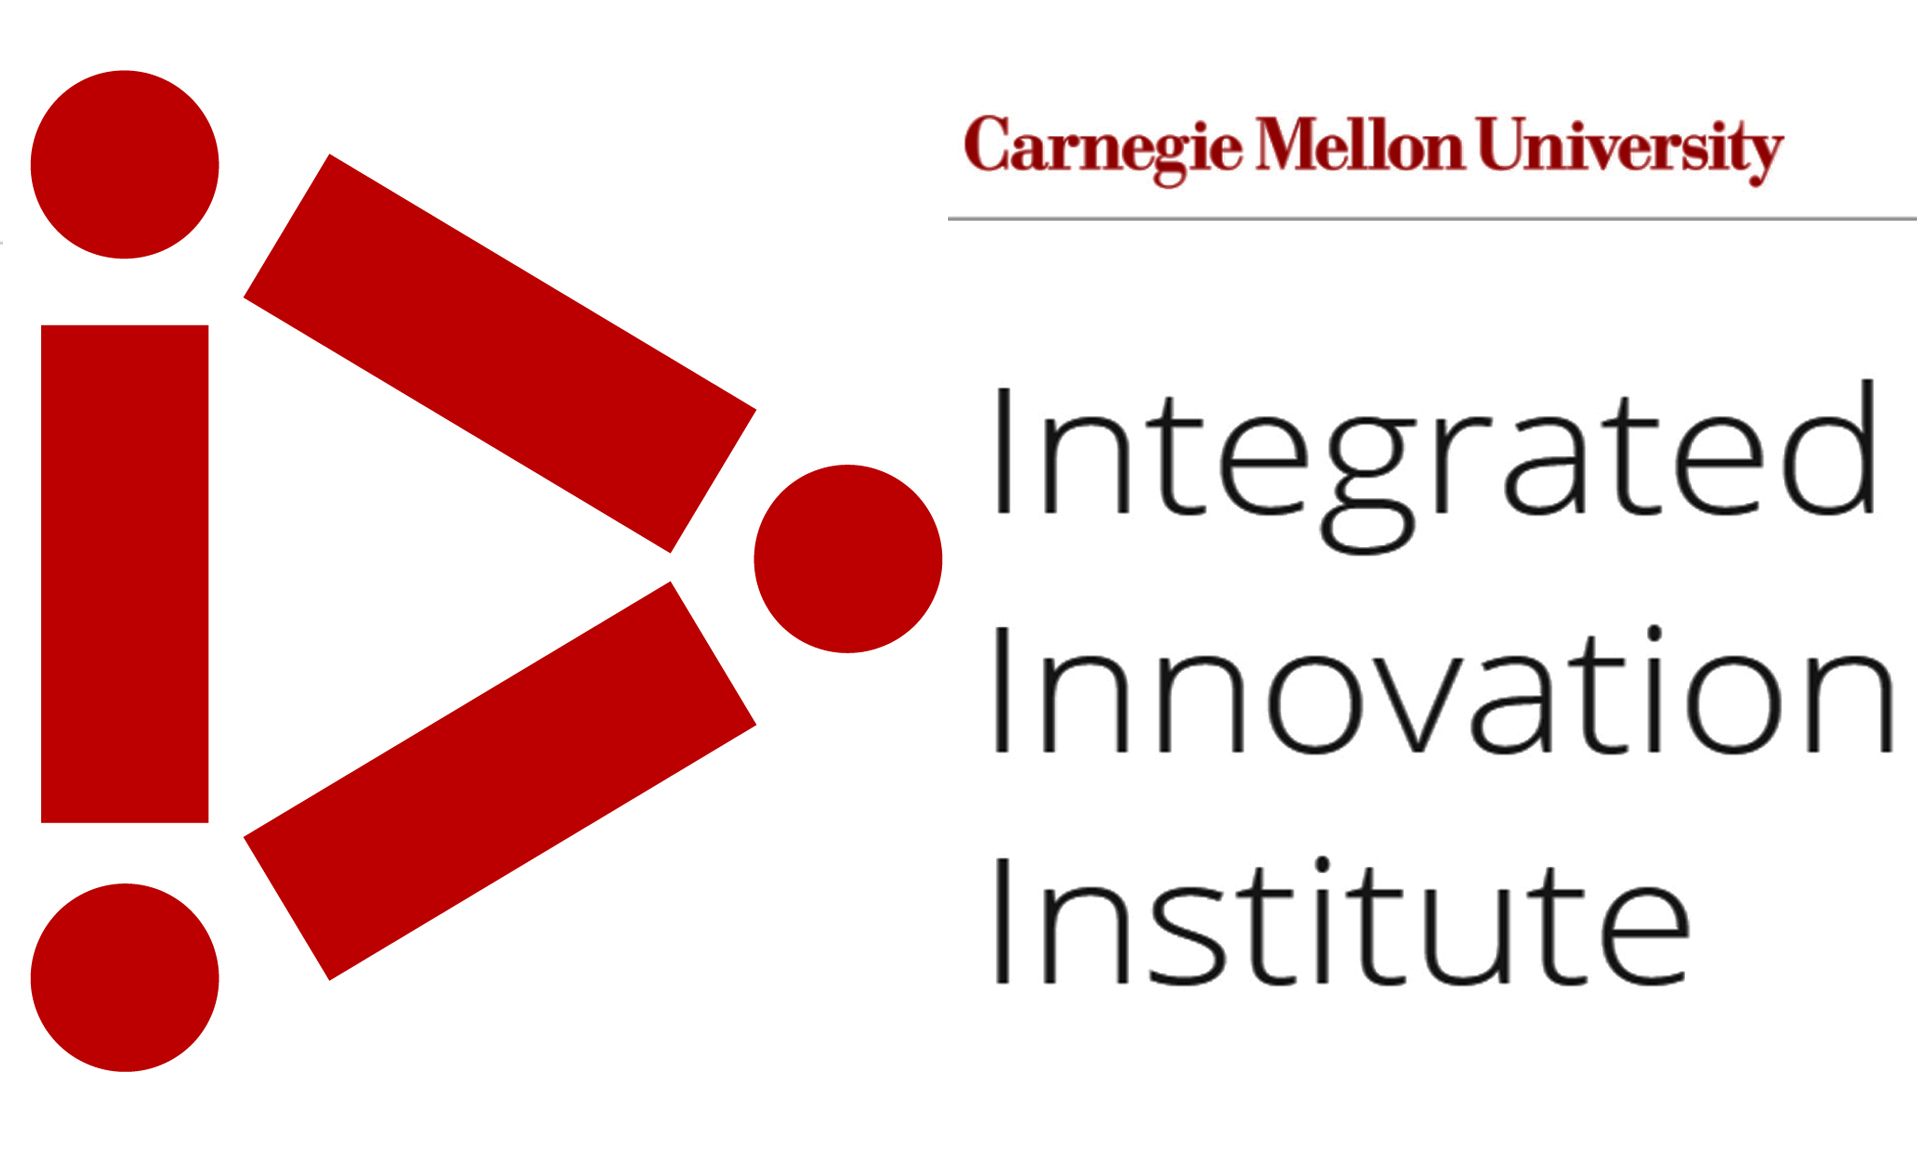 Integrated Innovation Institute